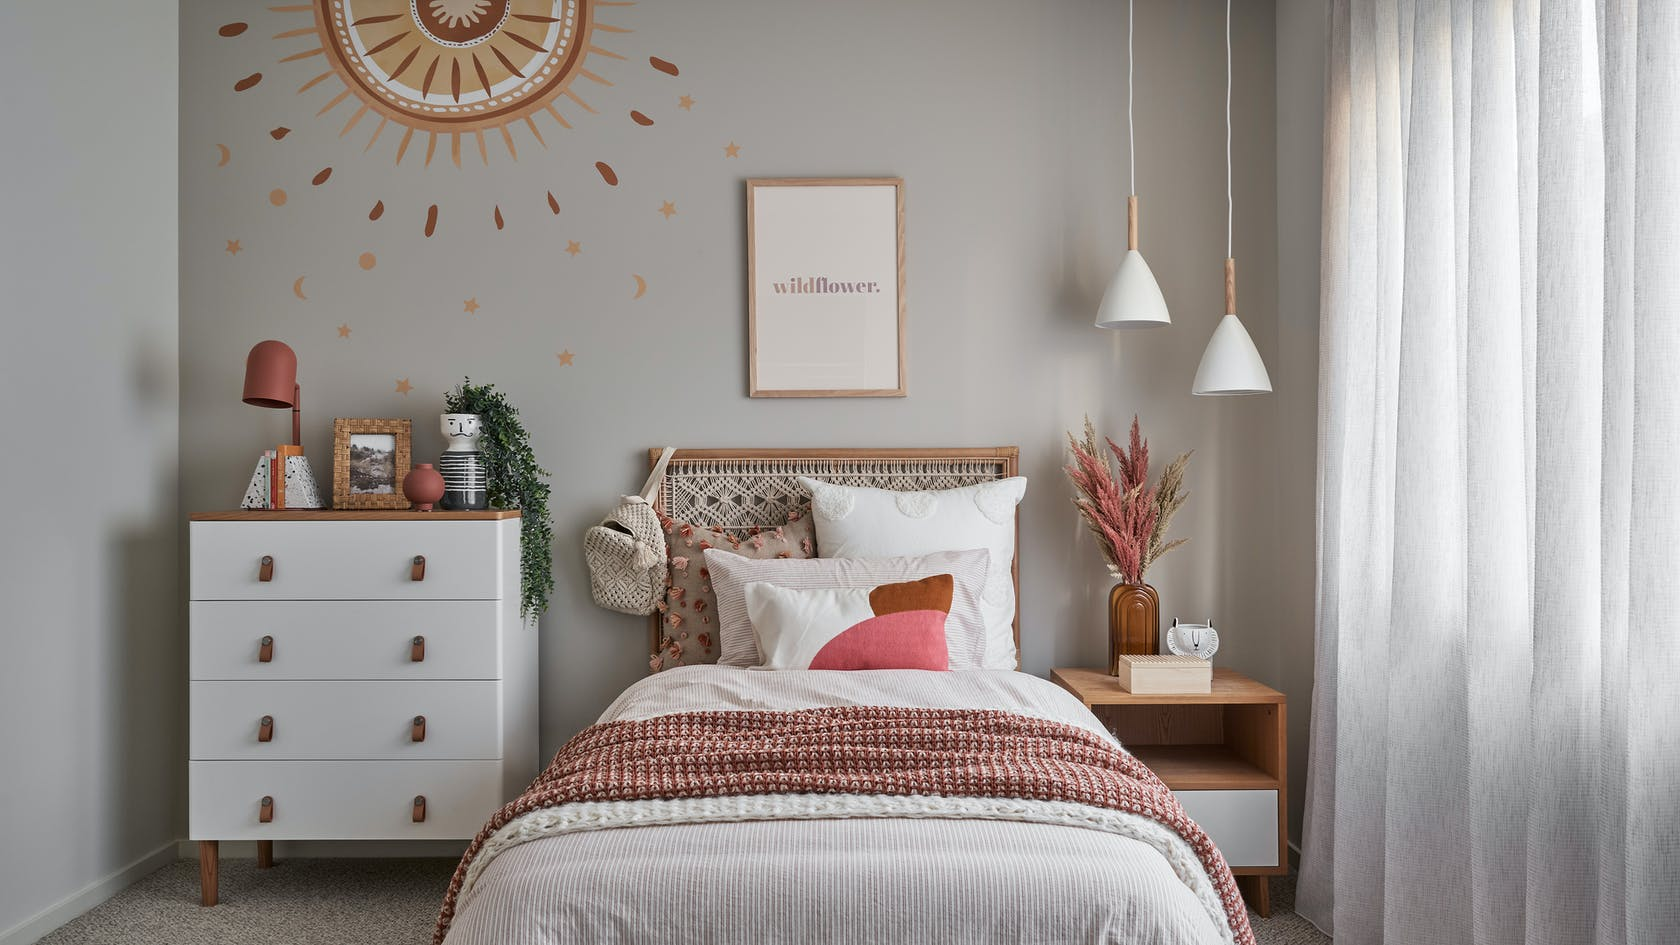 bohemian little girls bedroom with rattan headboard and white sheer curtains